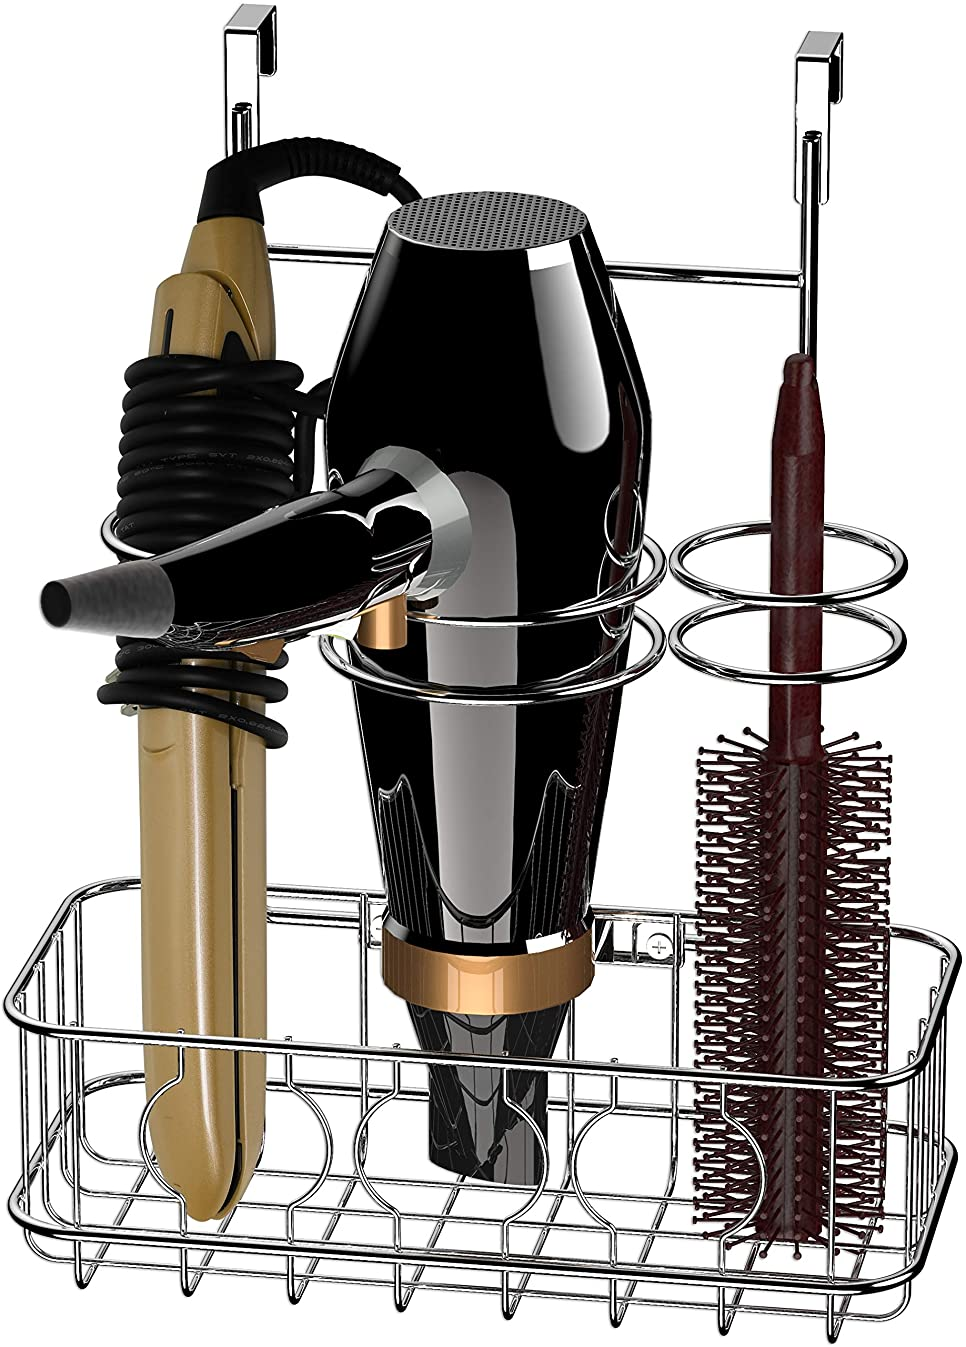 Simple Houseware Cabinet Door/Wall Mount Hair Dryer & Styling Tools Organizer Storage, Chrome